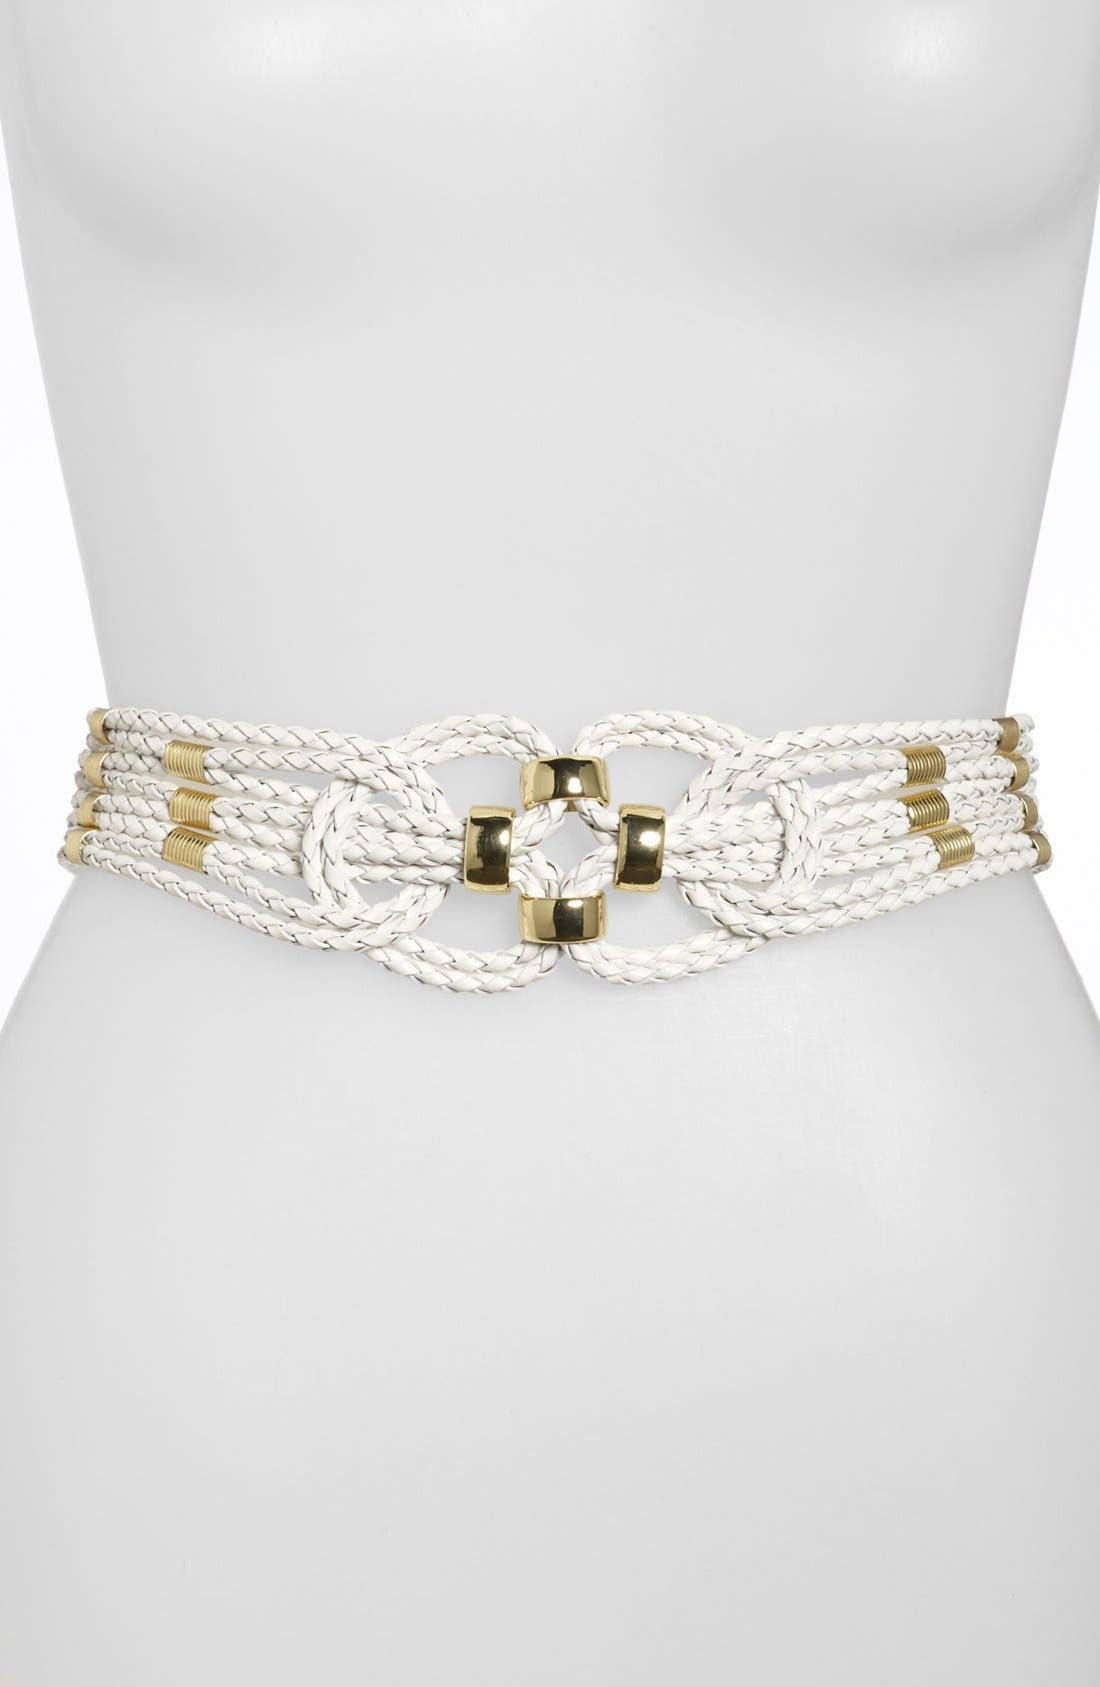 Alternate Image 1 Selected - Another Line Braided Leather Stretch Belt